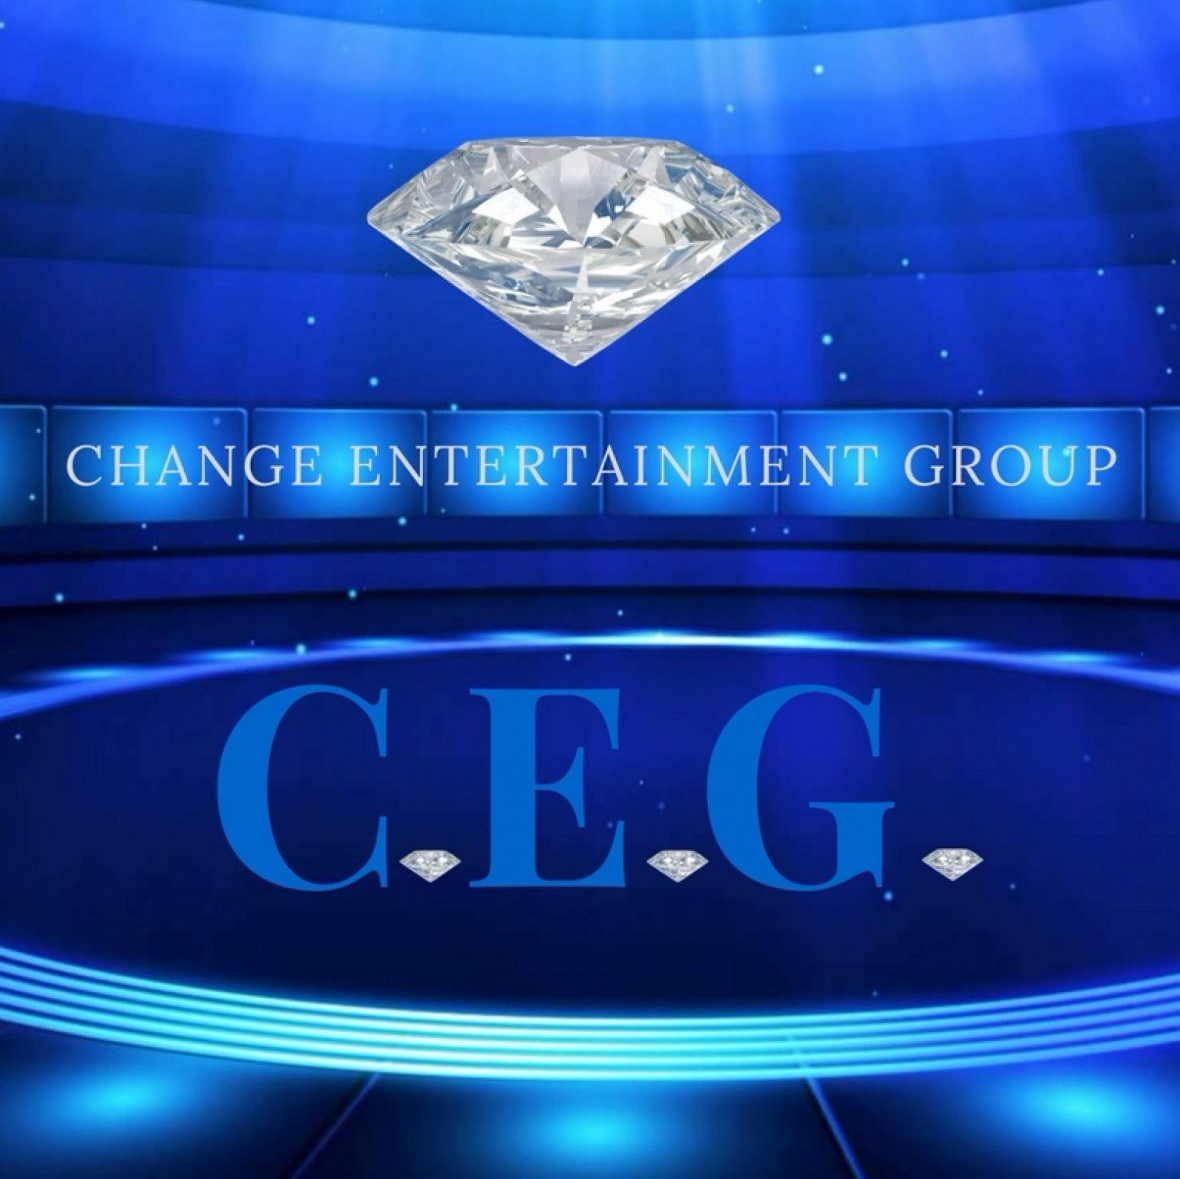 Change Entertainment Group